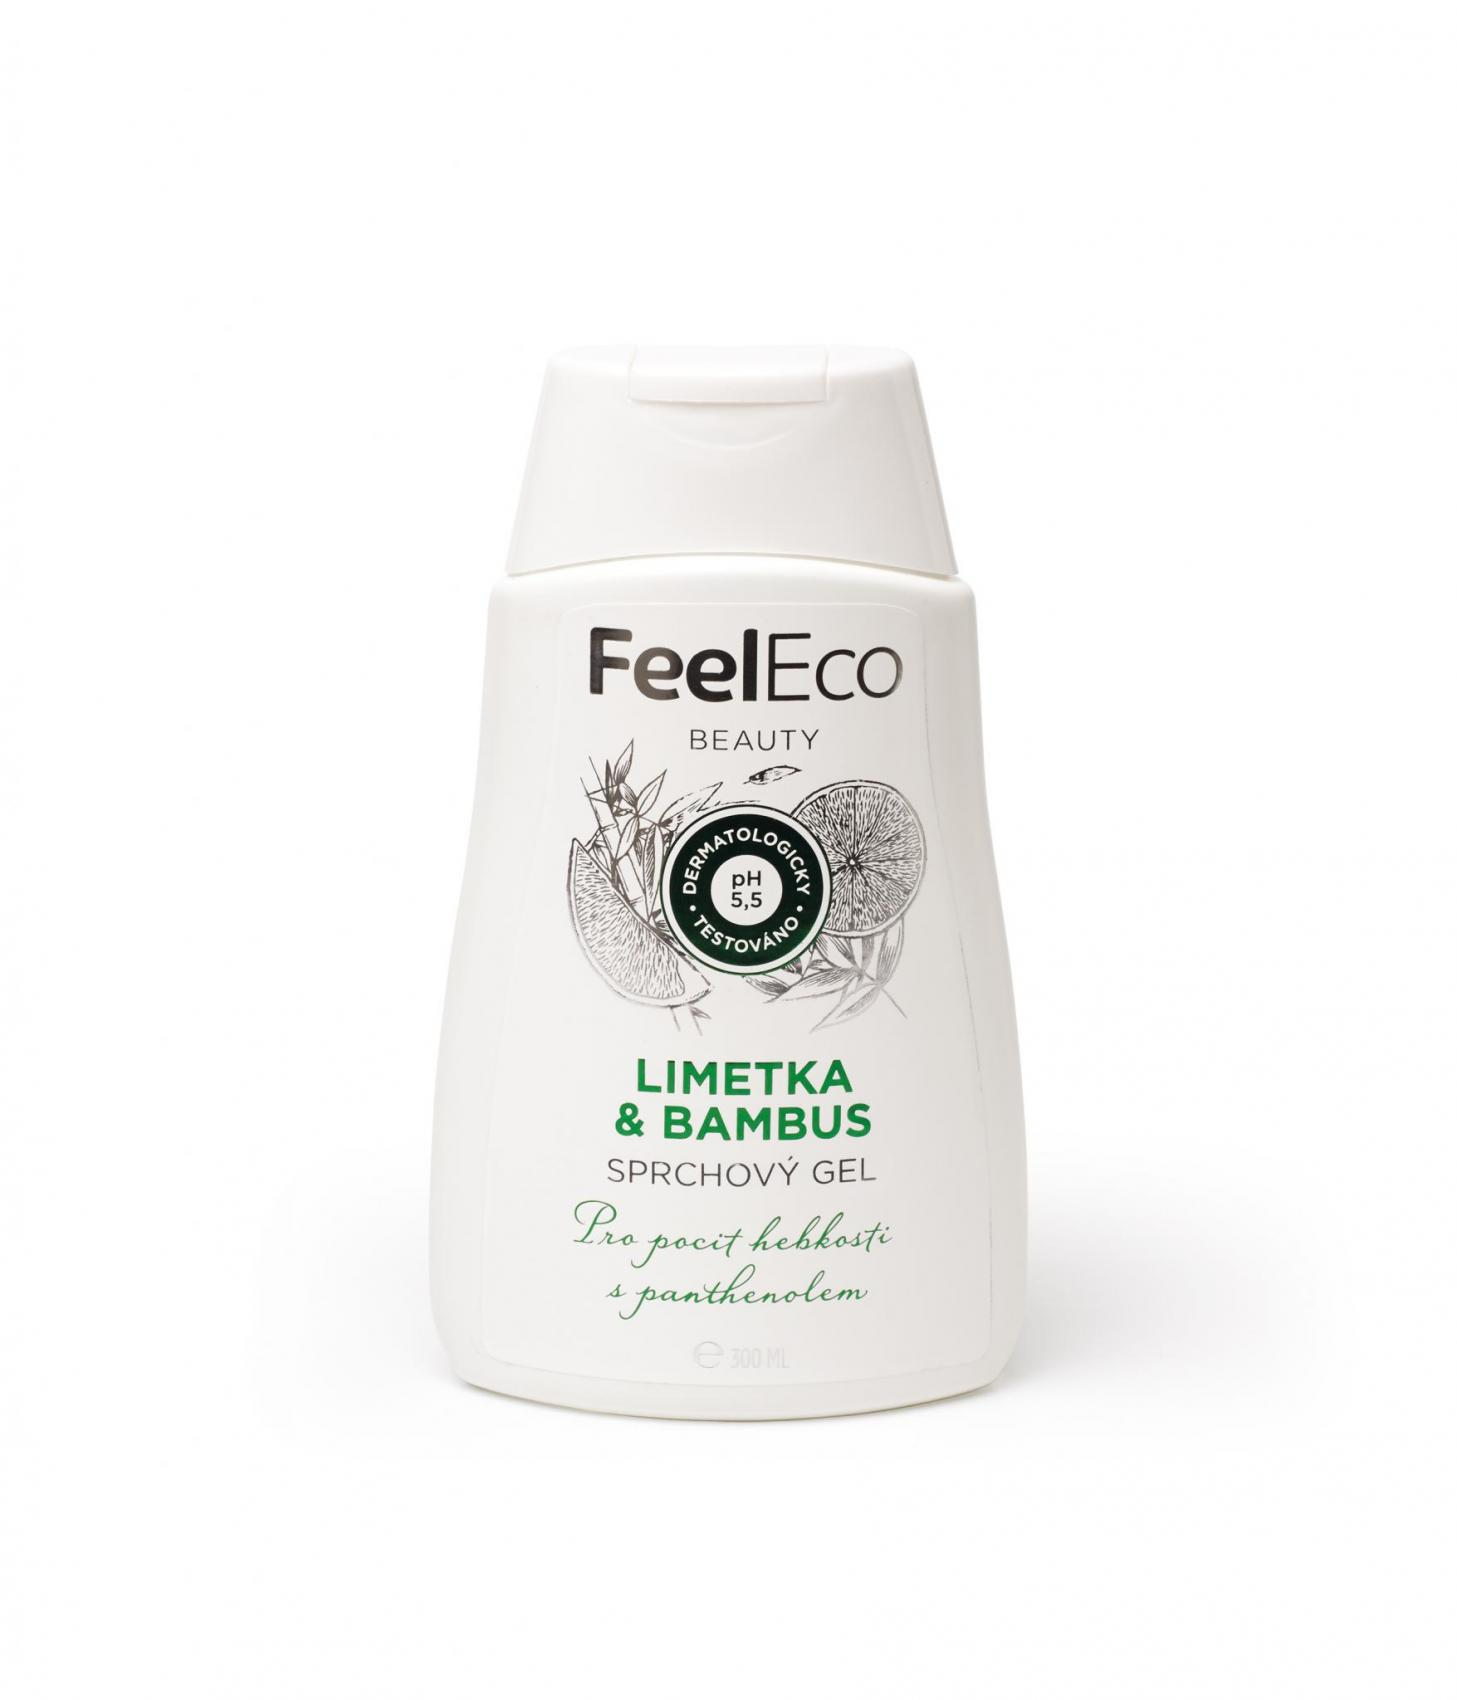 Feel Eco sprchový gel limetka & bambus 300ml